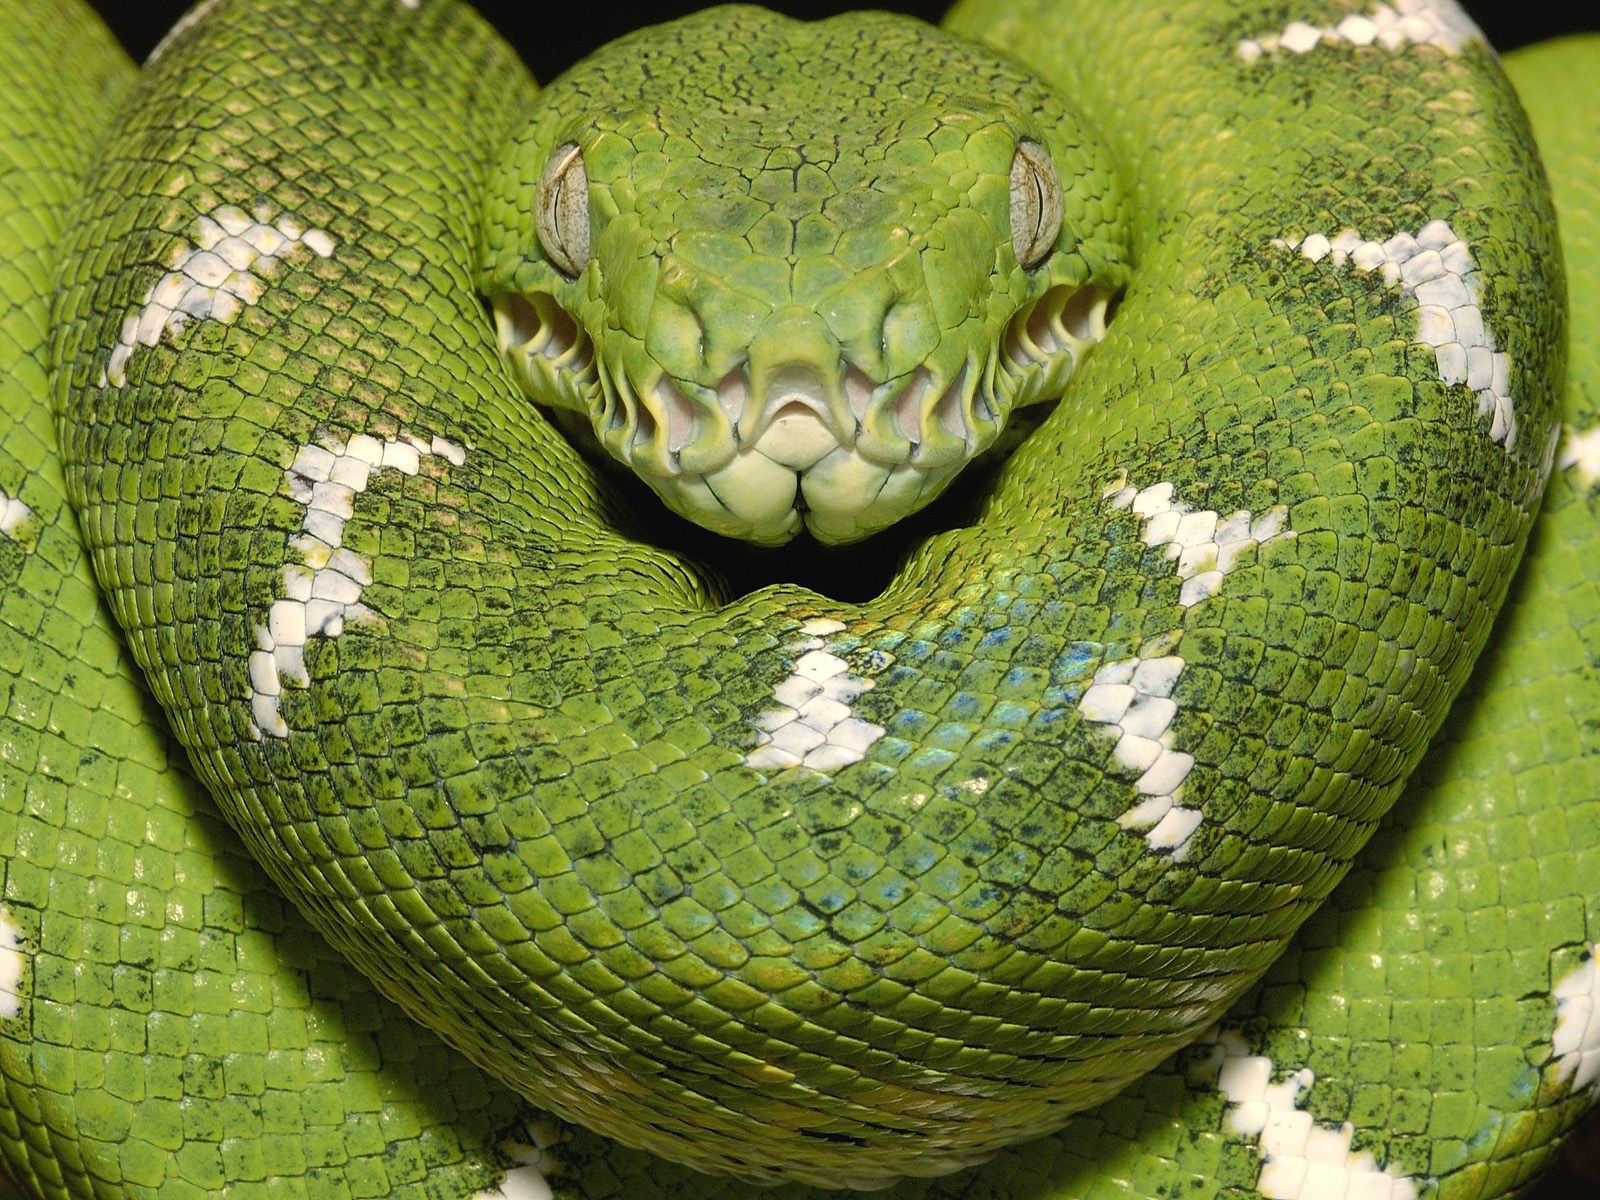 emerald tree boa amazon equador wallpapers - Emerald Tree Boa (Corallus caninus) adult Amazon Ecuador